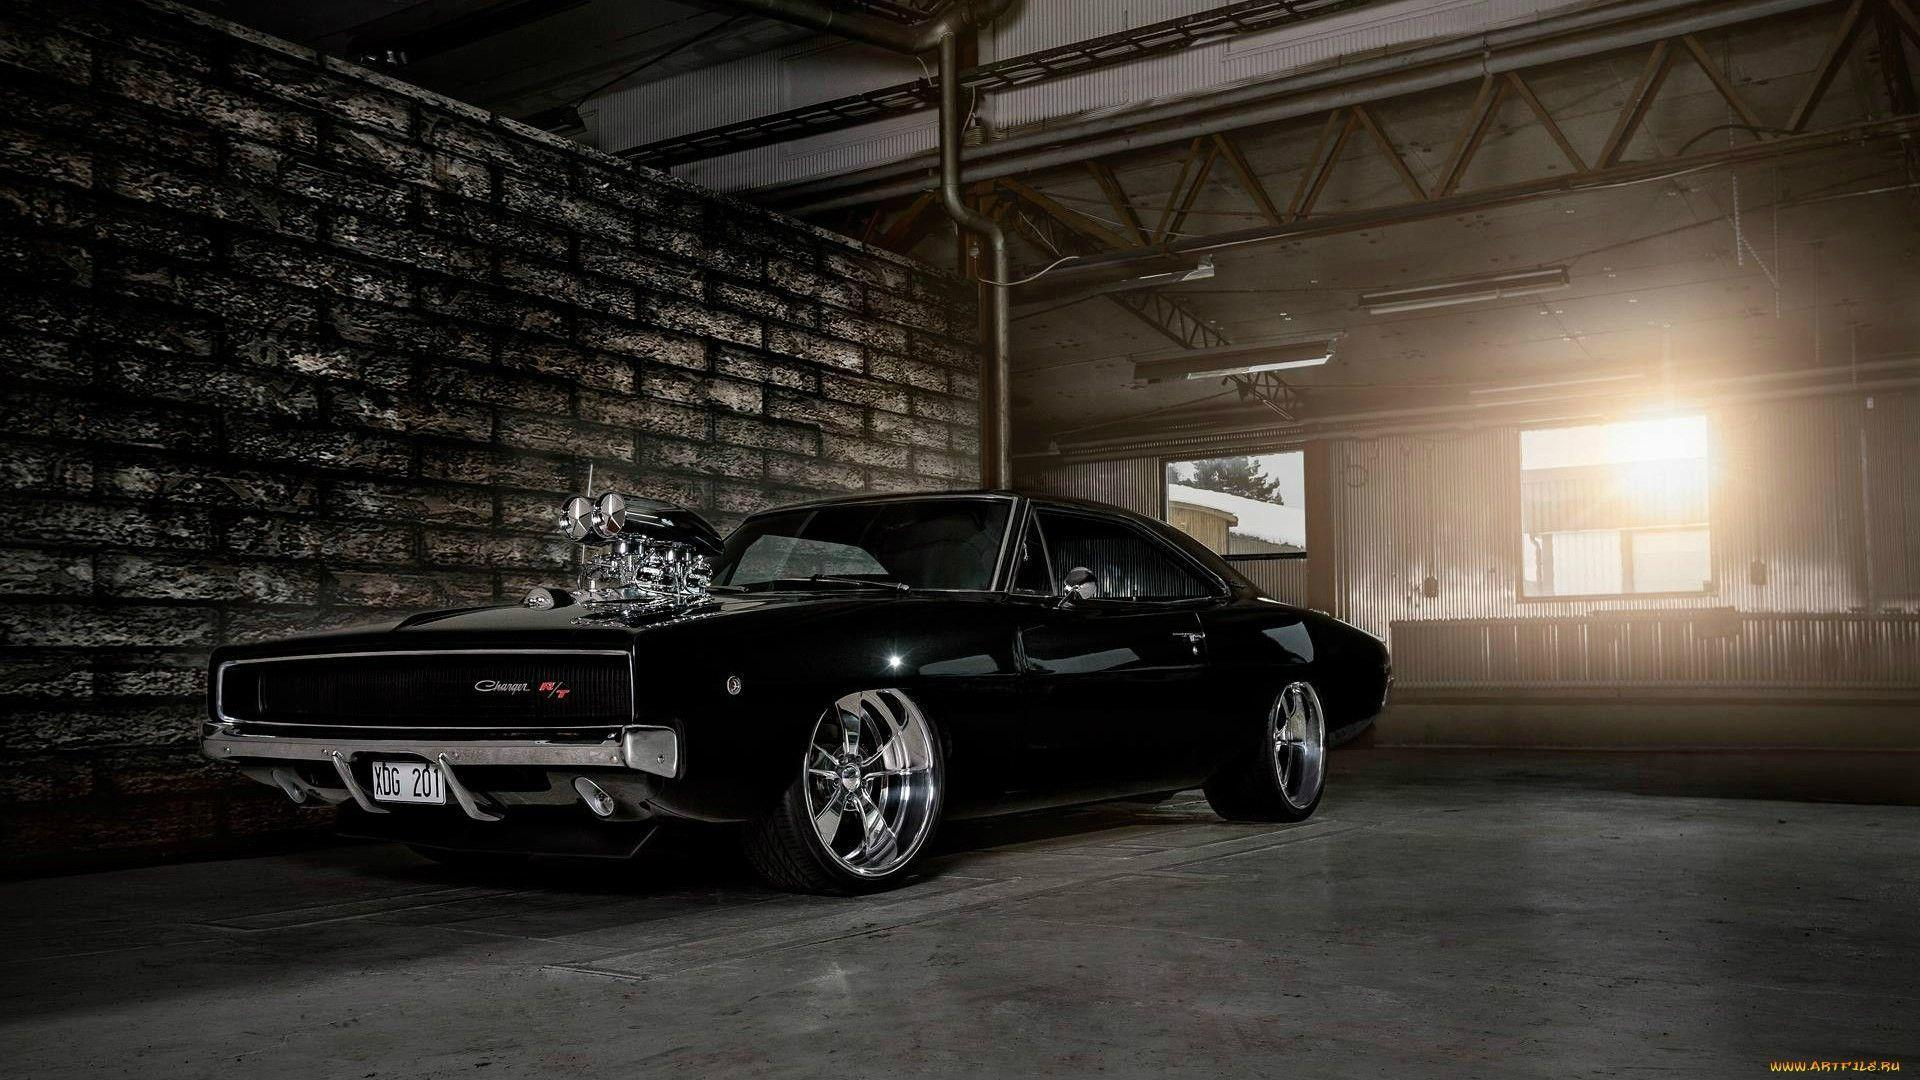 1970 Dodge Charger Wallpapers Top Free 1970 Dodge Charger Backgrounds Wallpaperaccess